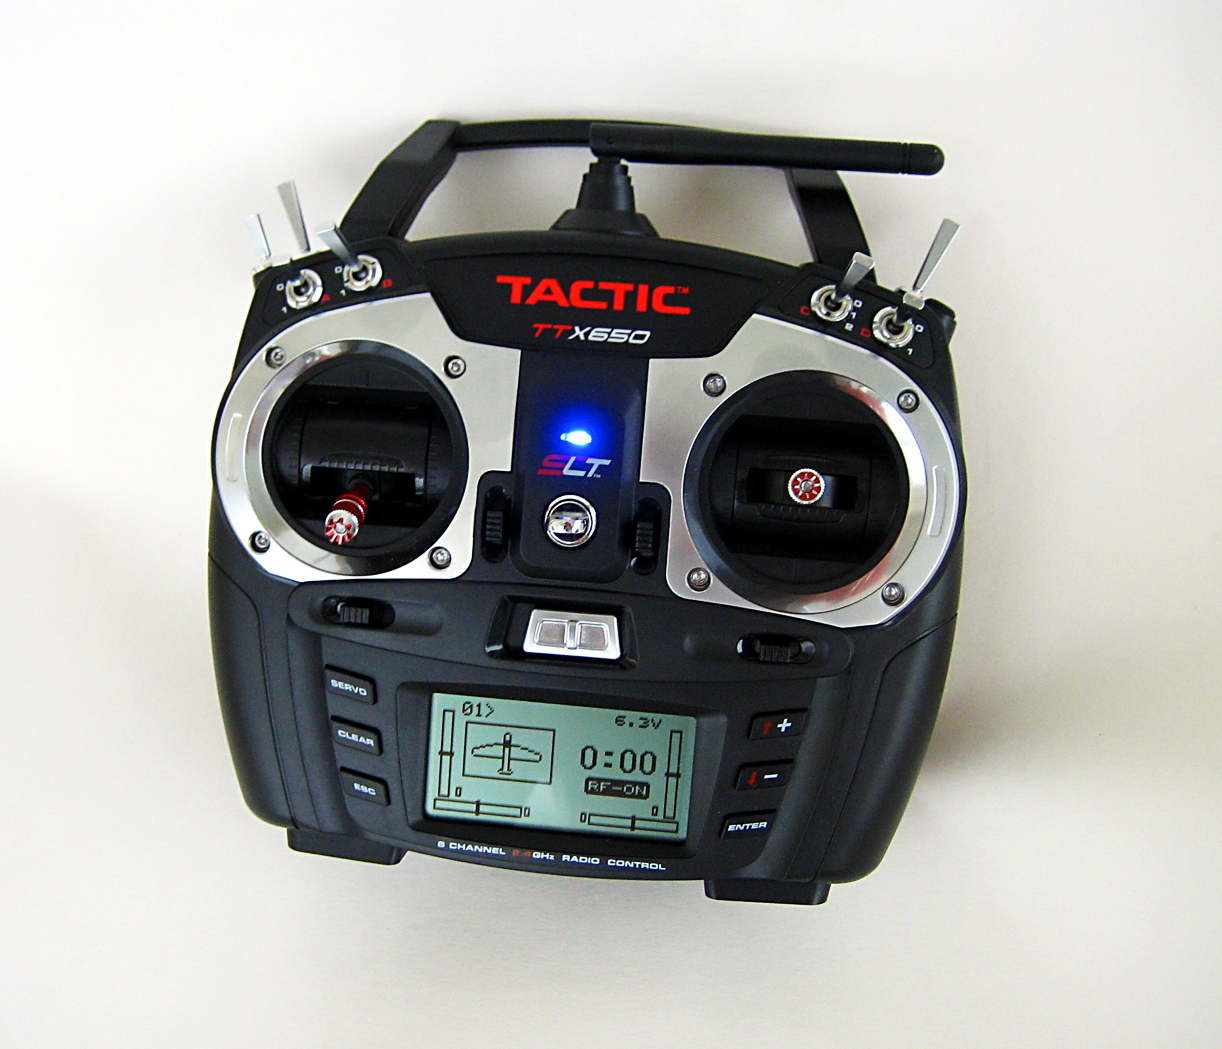 The TACTIC TTX650 Radio